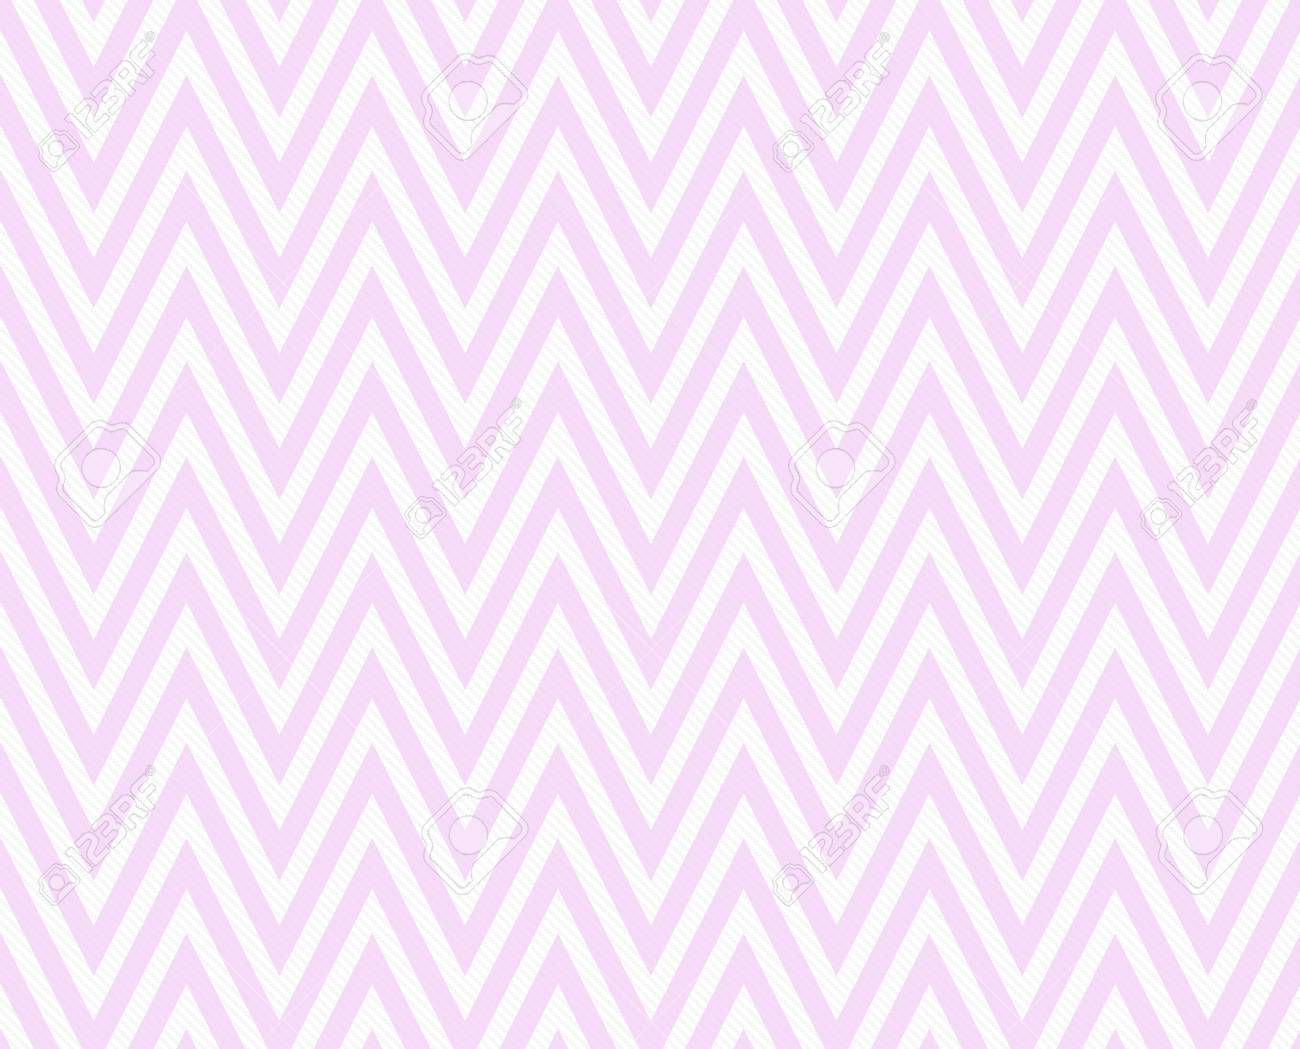 pink and white zigzag textured fabric pattern background that